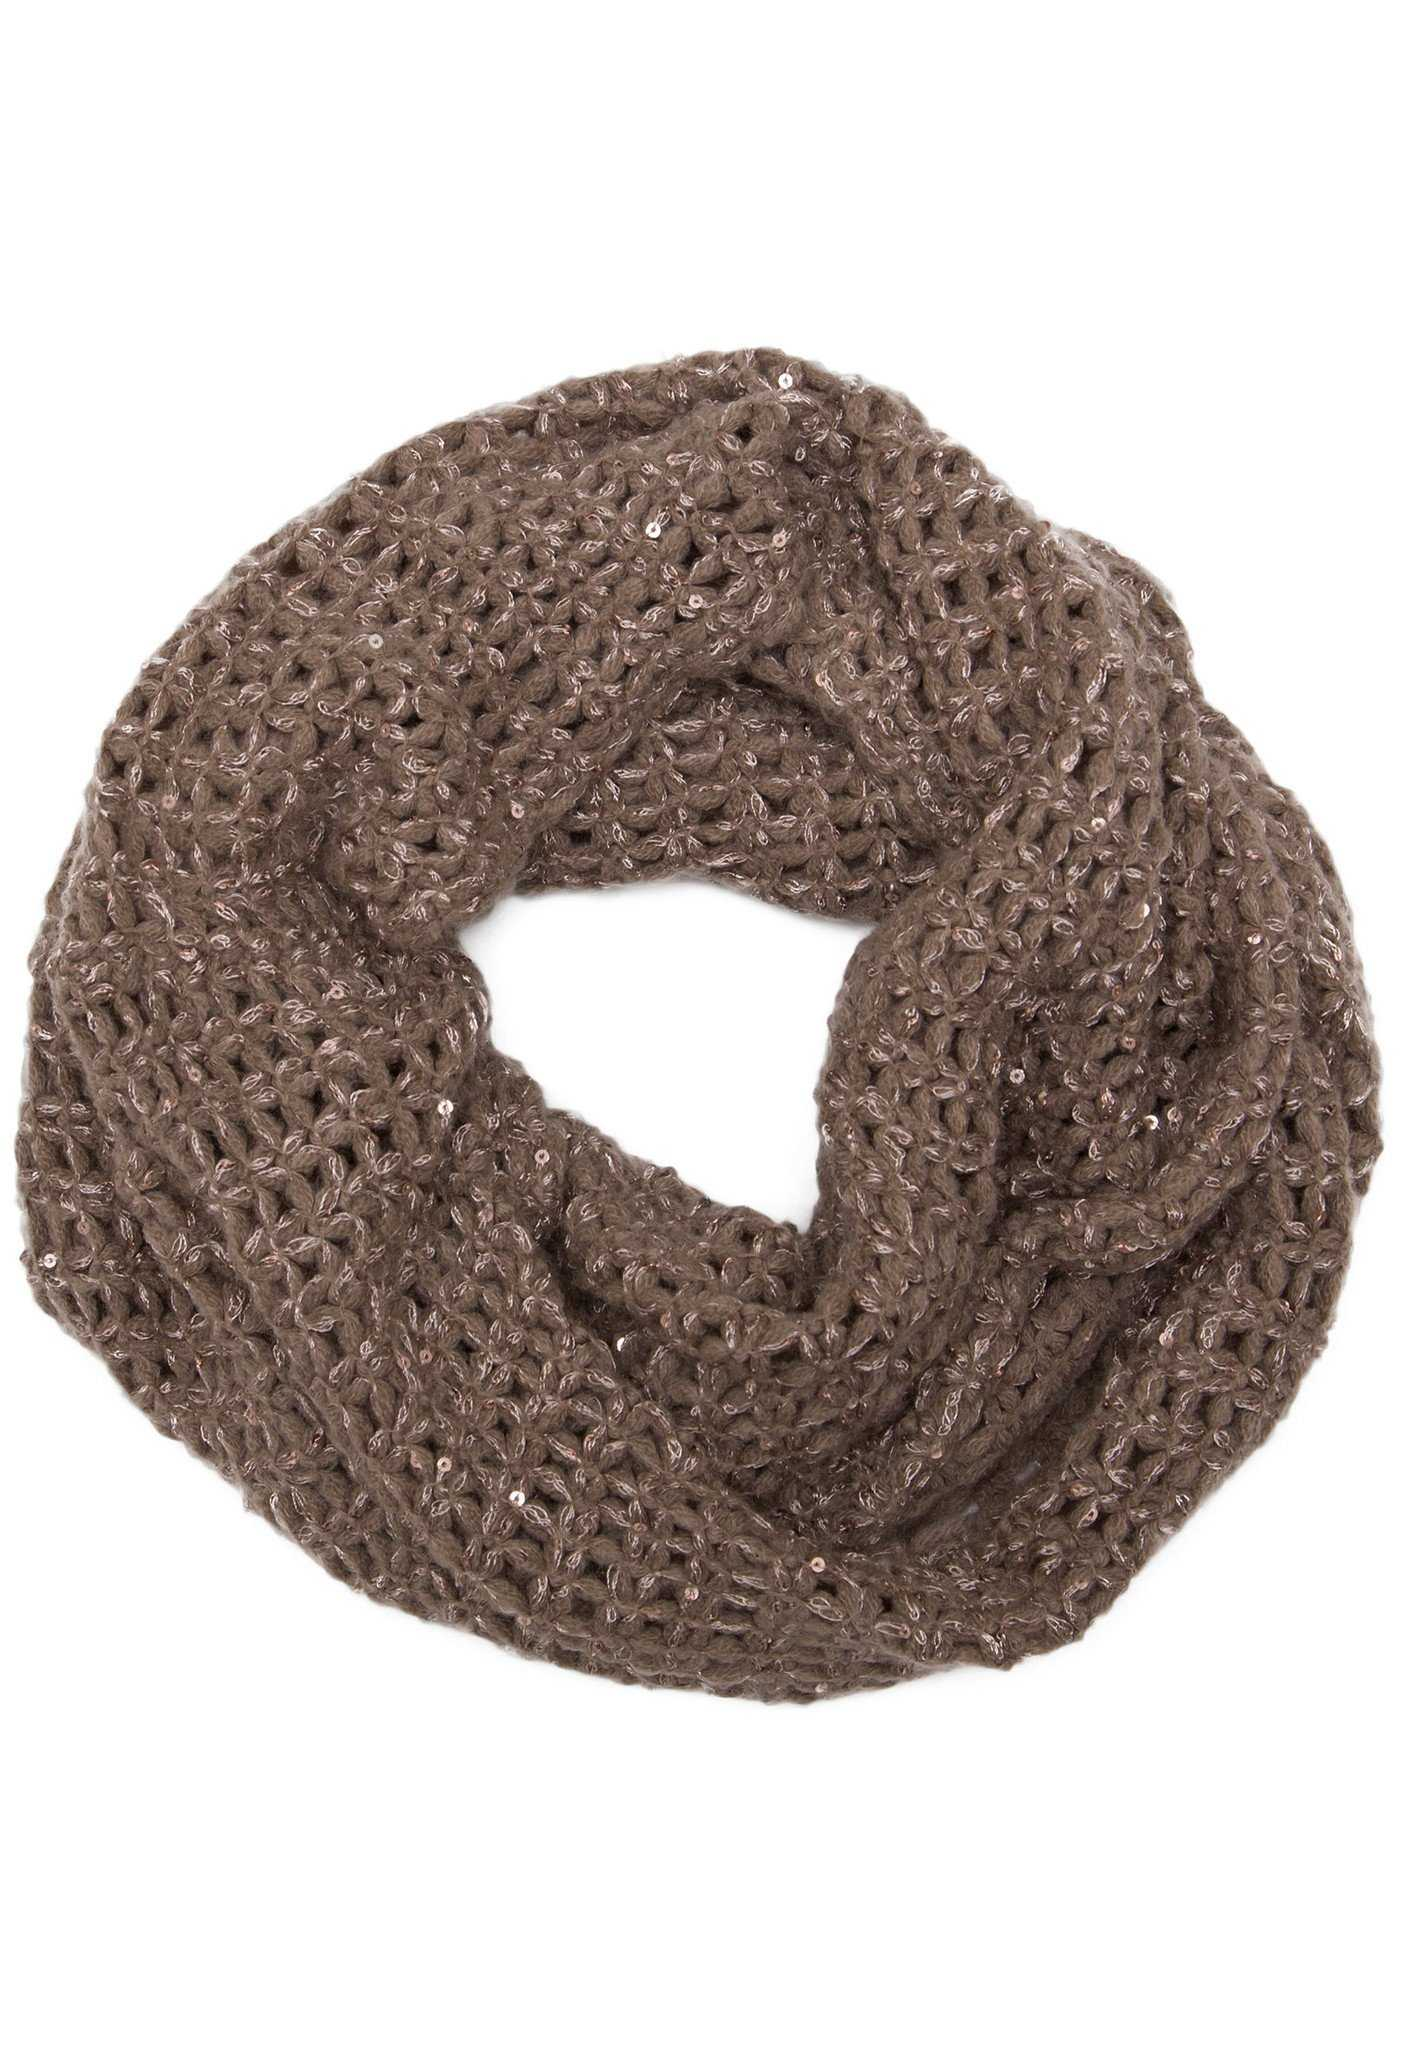 Sinclair Infinity Scarf - Taupe